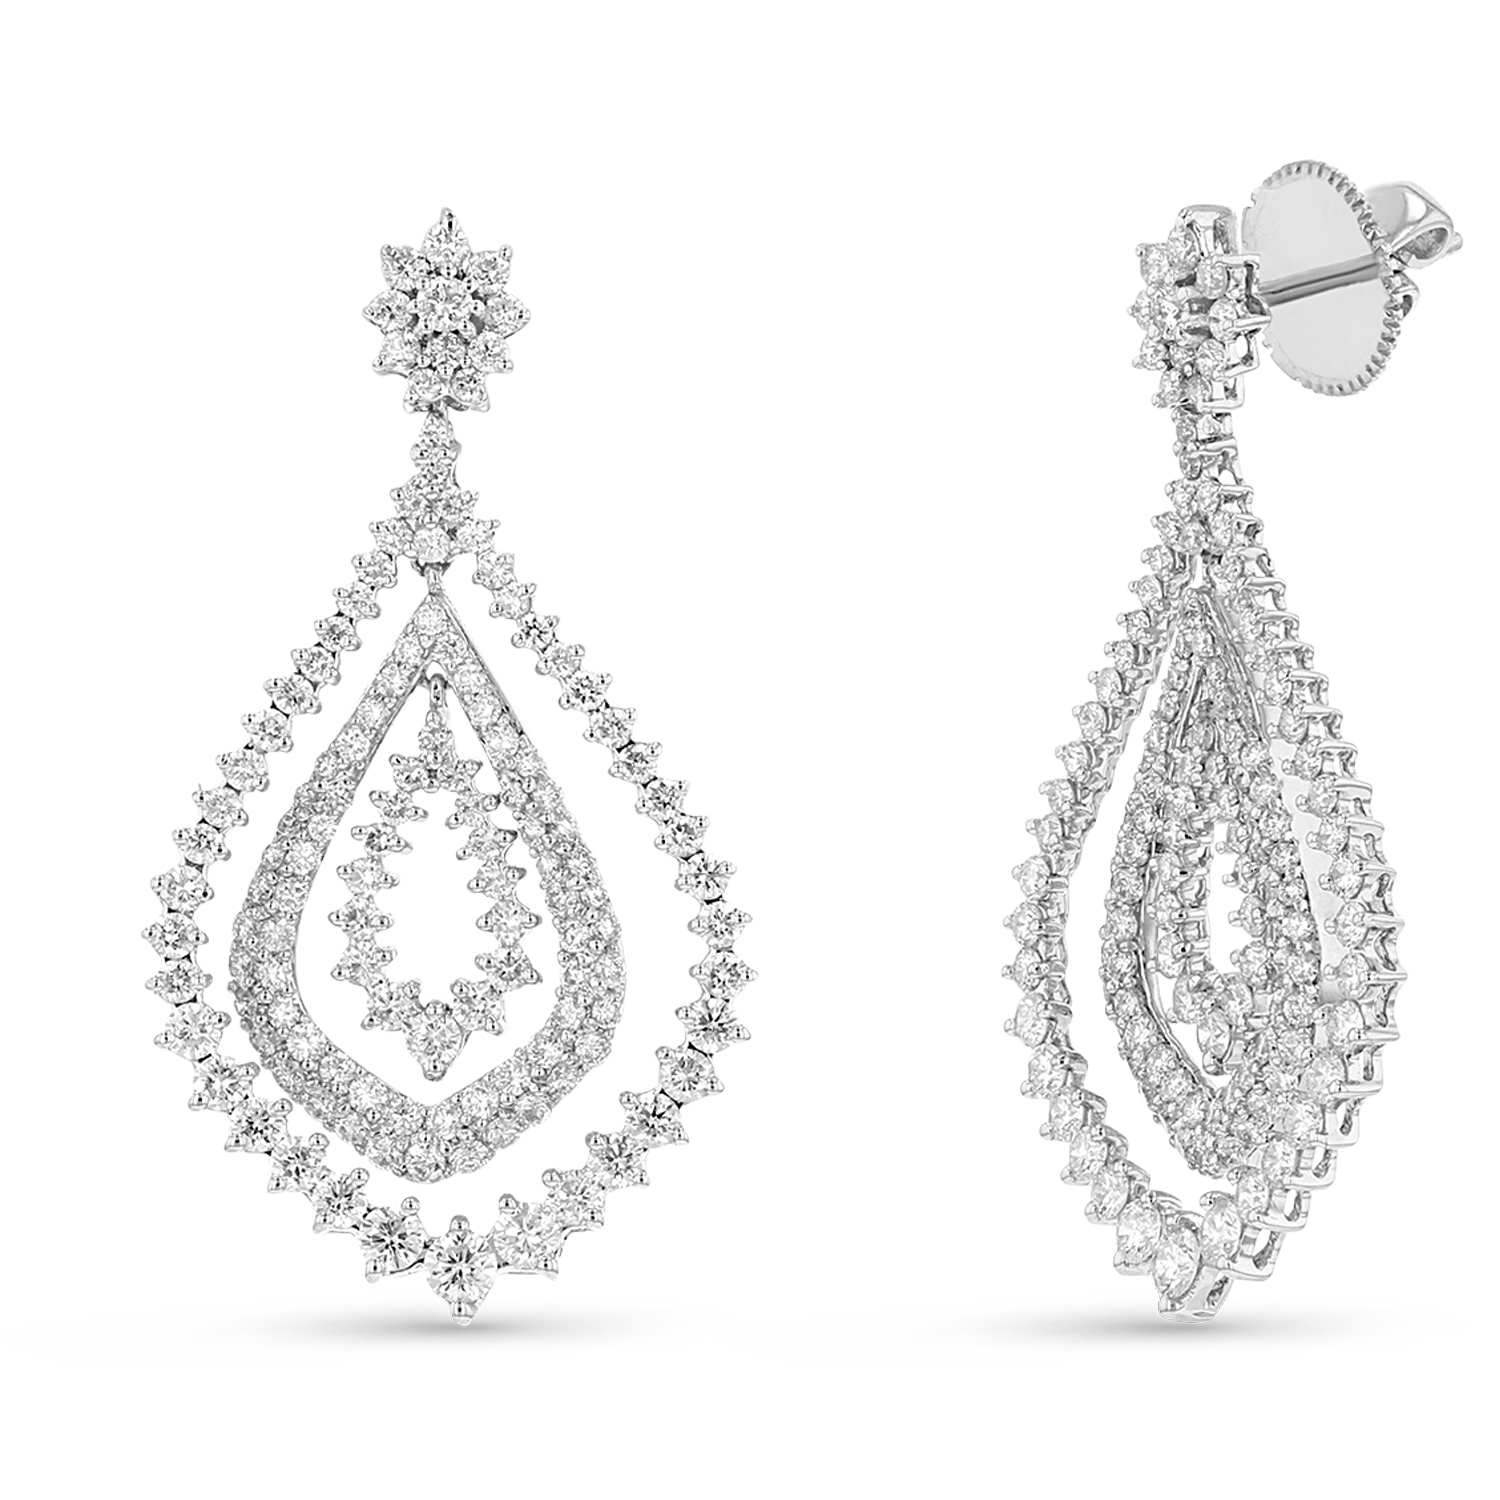 View 2.55ctw Diamond Fashion Earrings in 18k White Gold